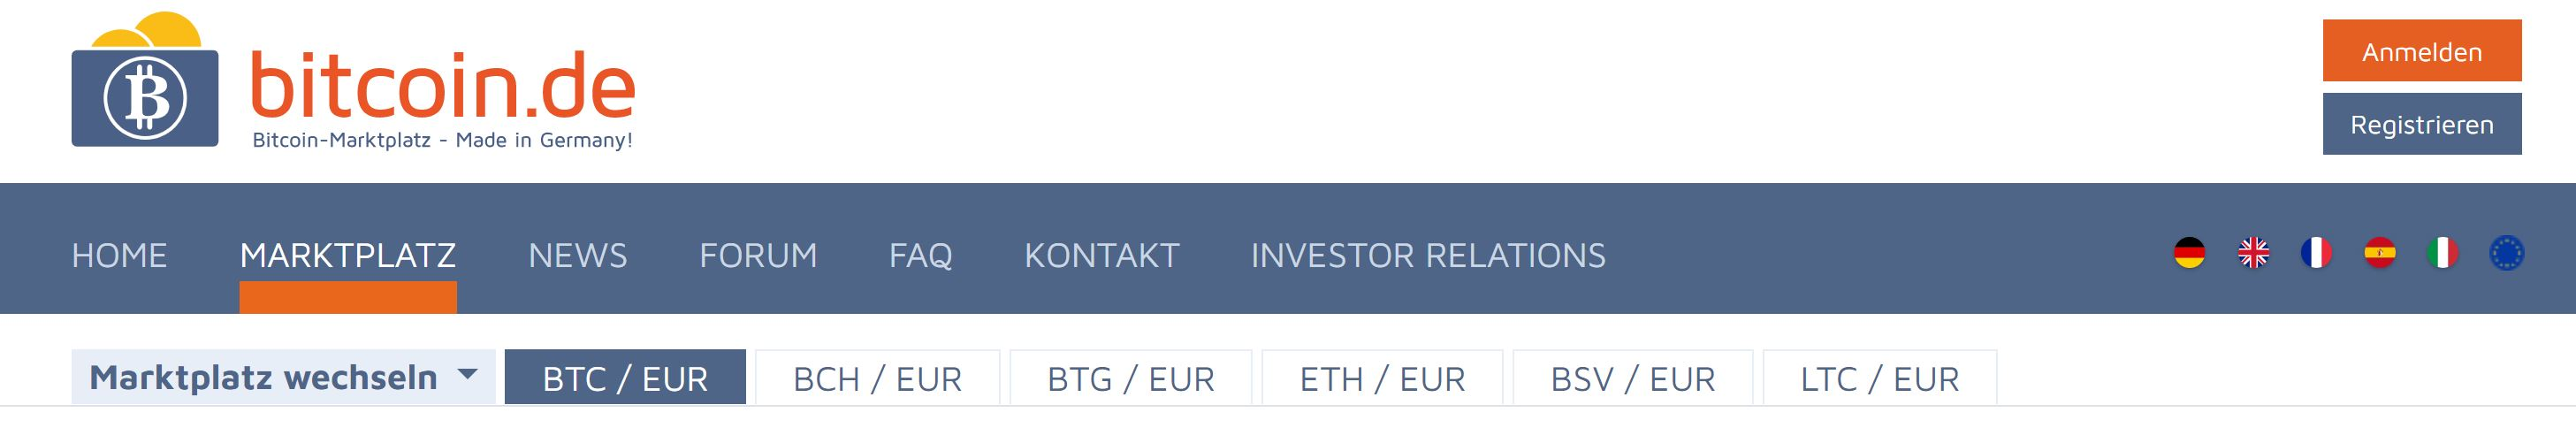 Bitcoin.de trading with fiat and crypto